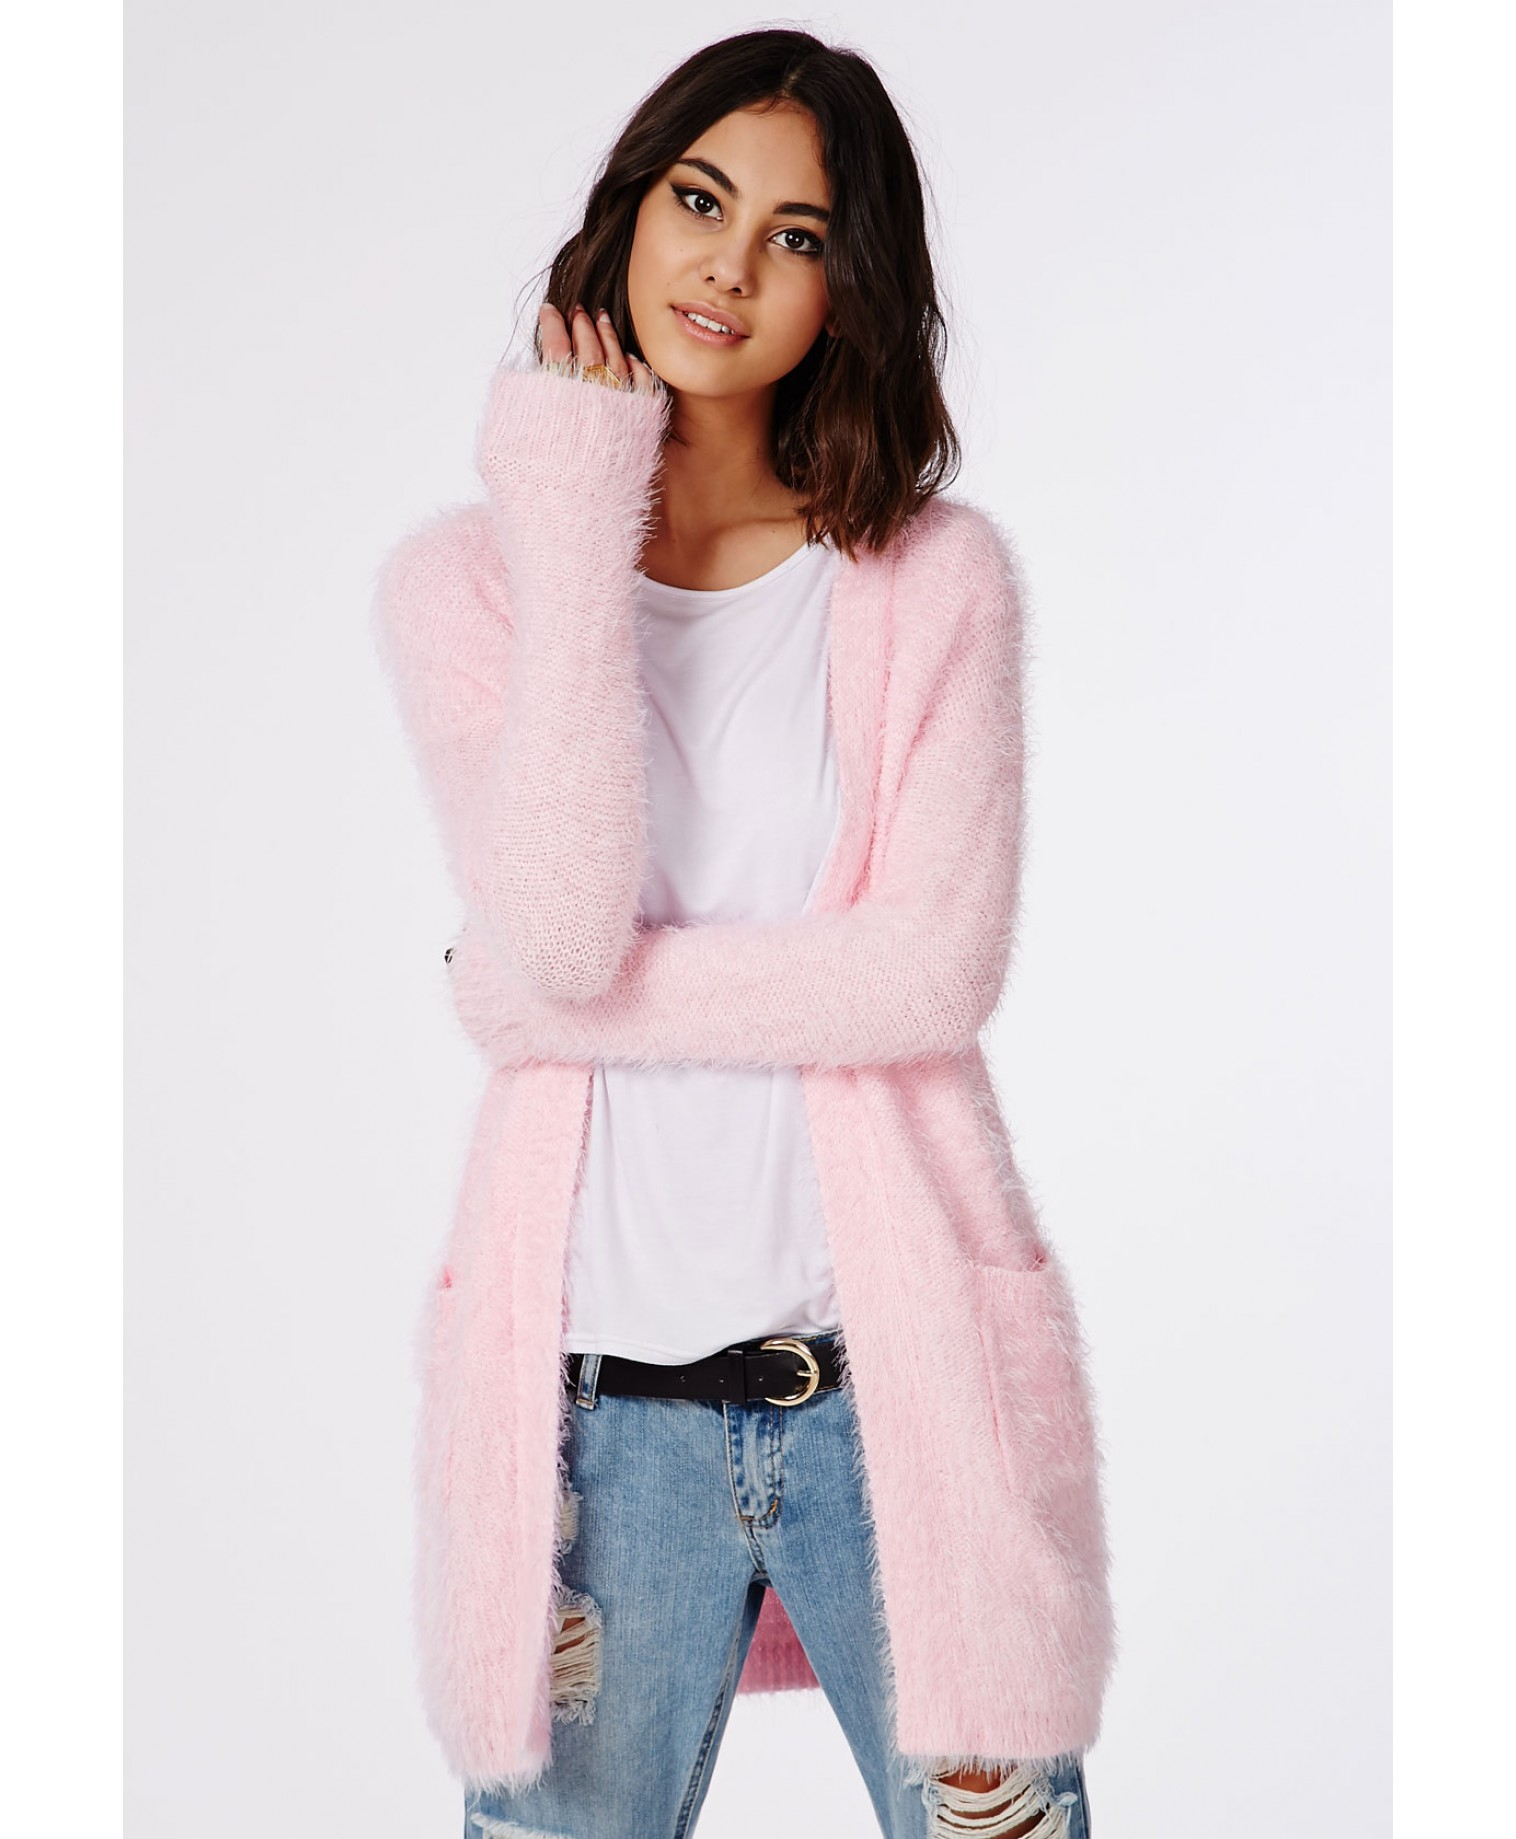 Missguided Ceris Knitted Fluffy Cardigan Baby Pink in Pink | Lyst